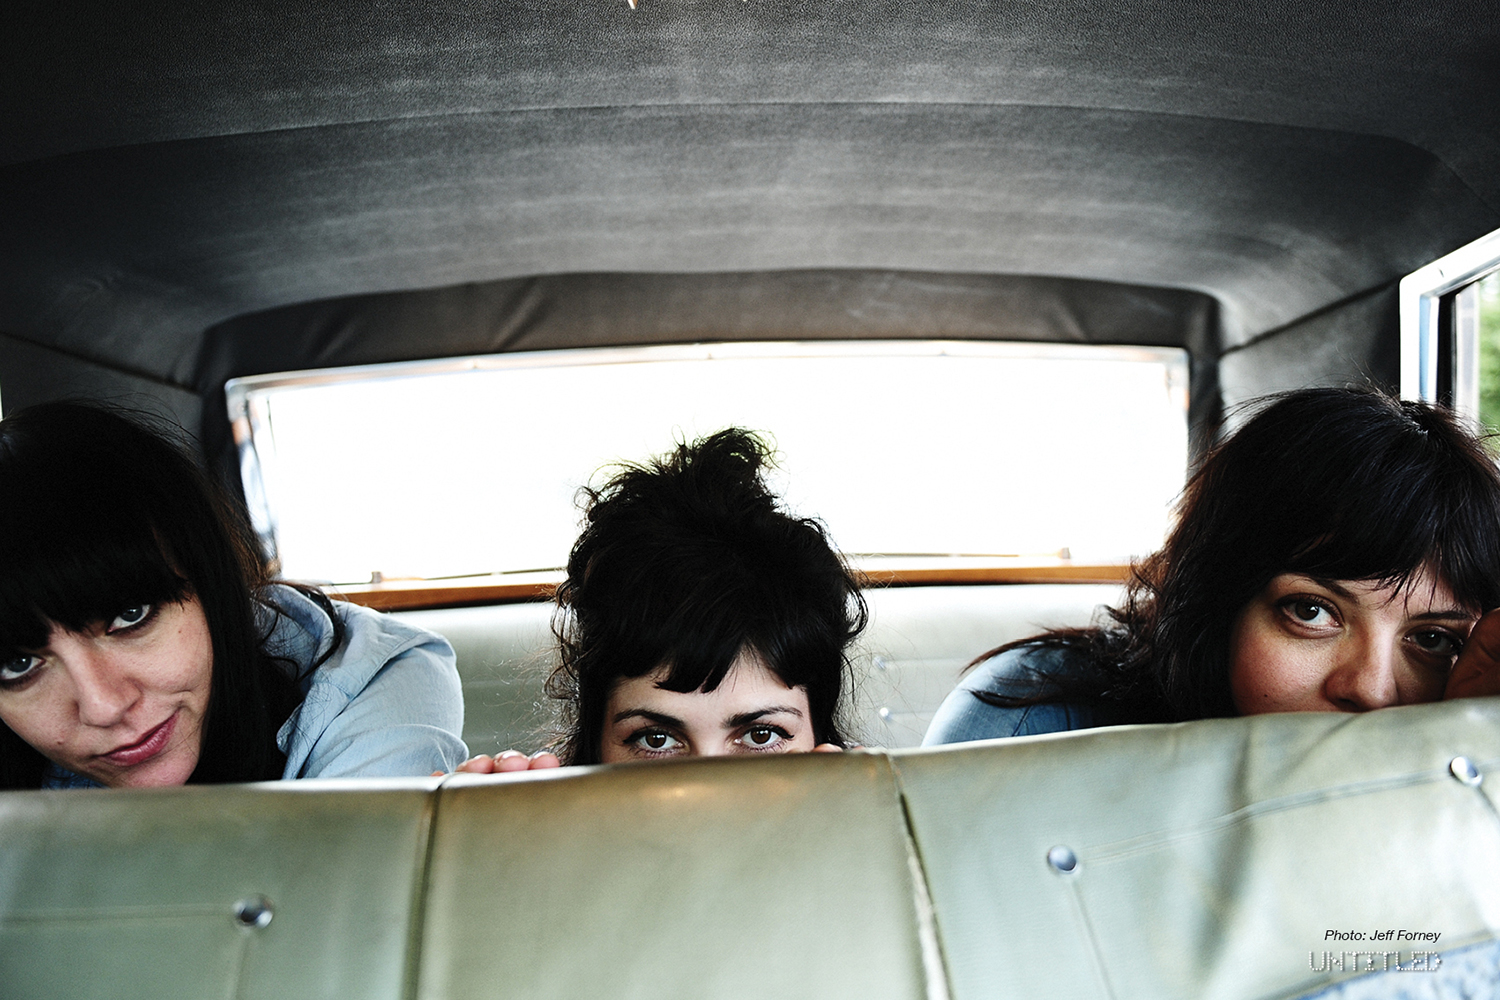 The Coathangers - The Untiled Magazine - Photography by Jeff Forney